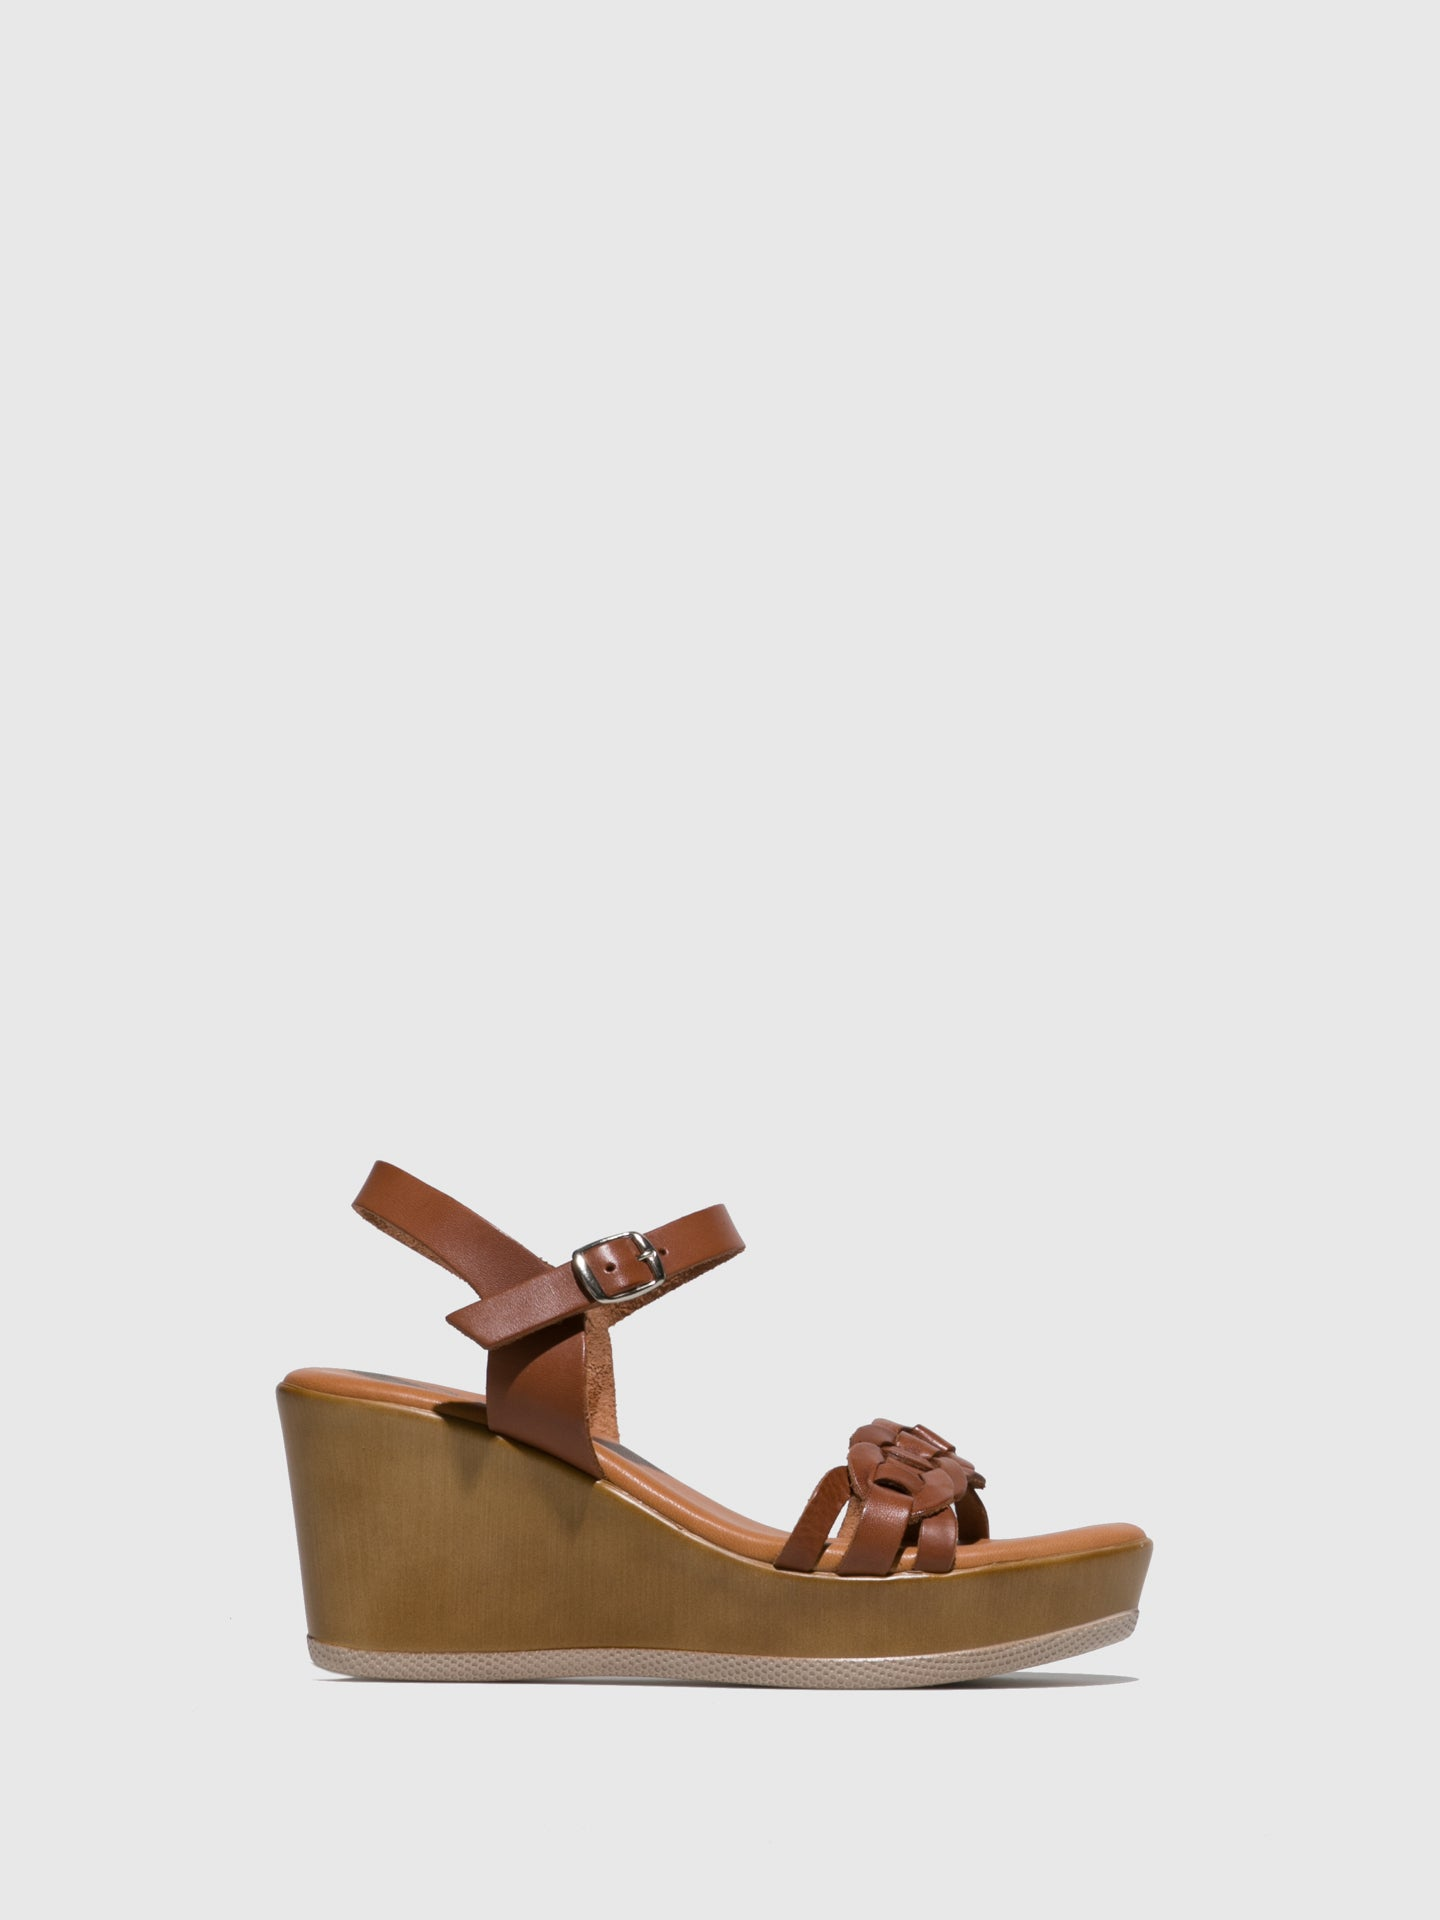 Sotoalto Tan Wedge Sandals